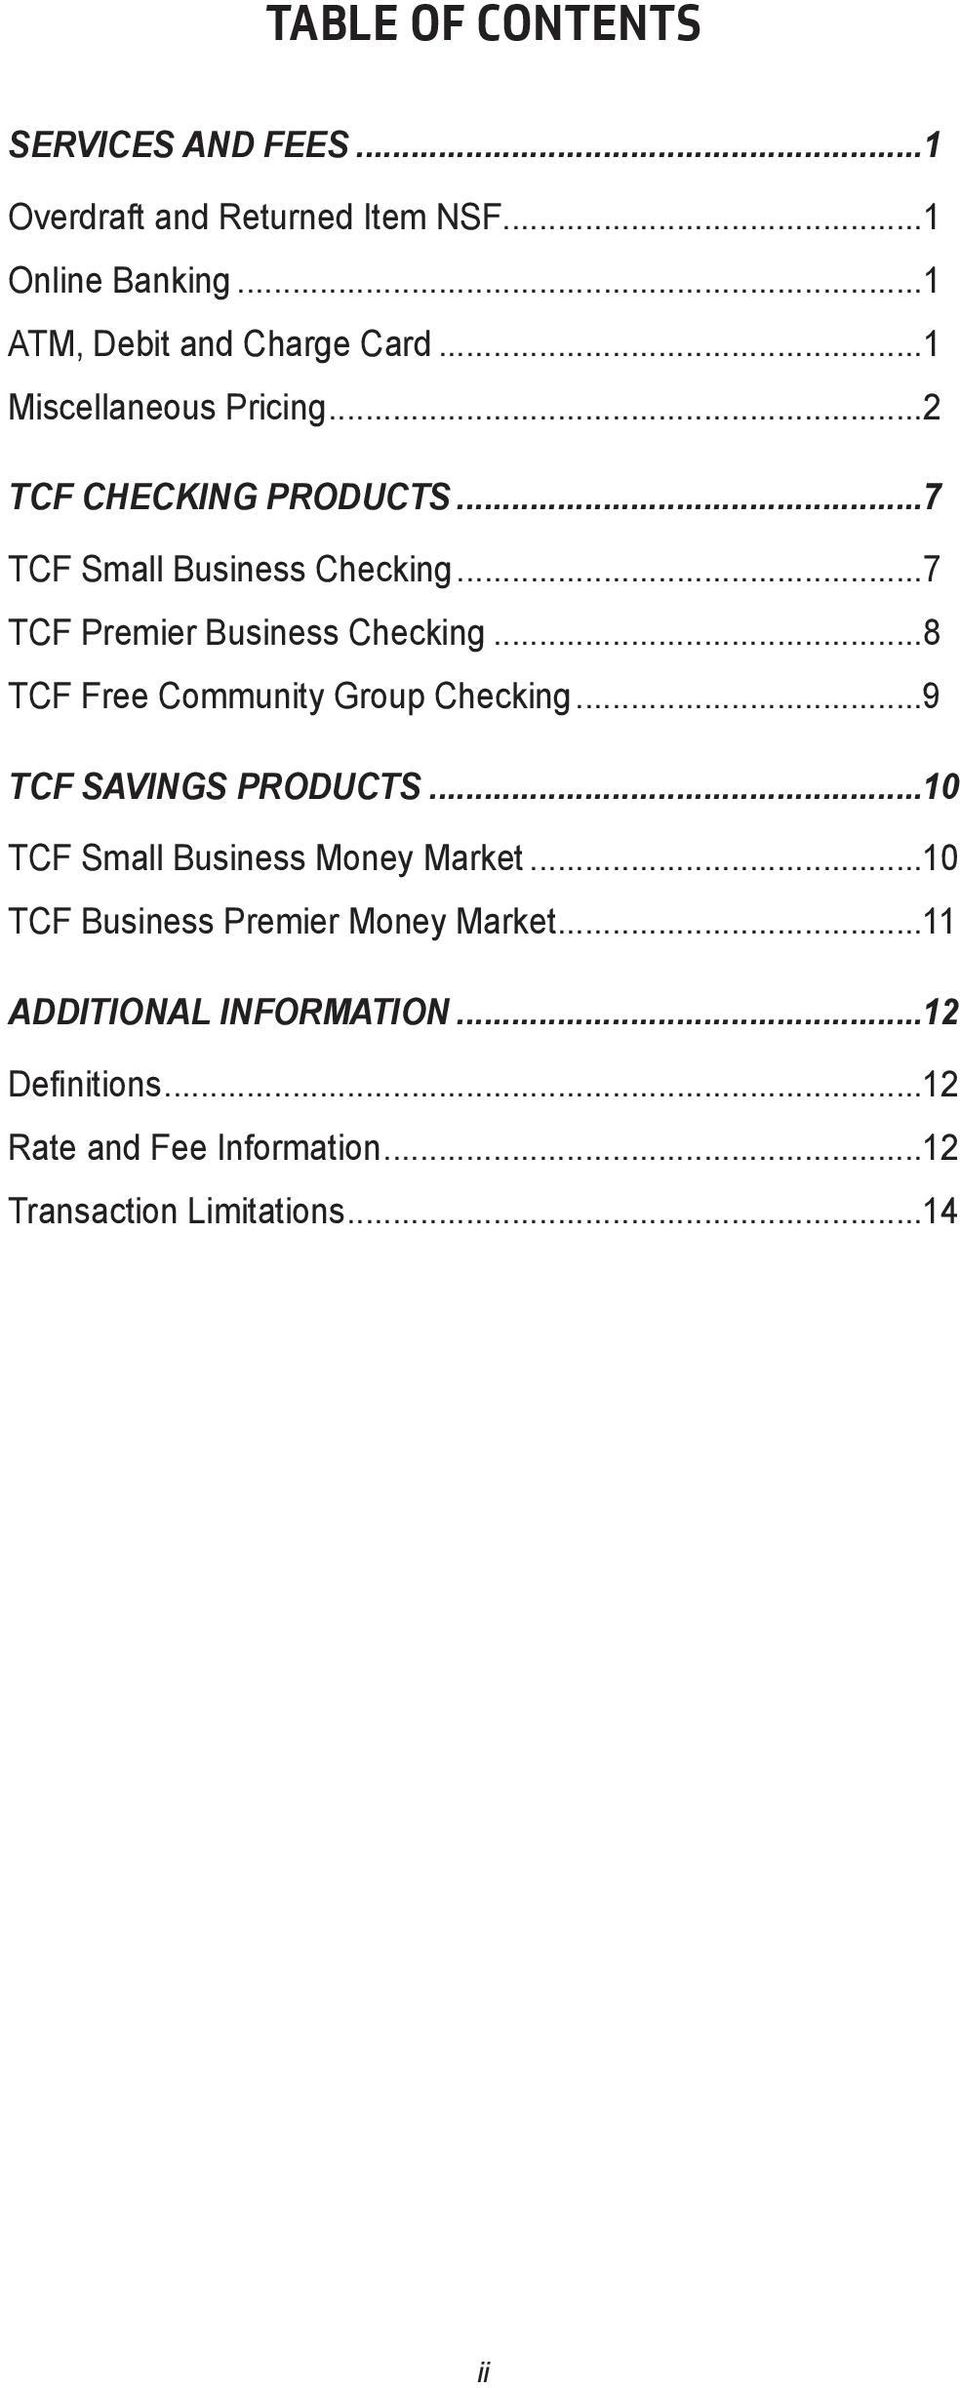 ..8 TCF Free Community Group Checking...9 TCF SAVINGS PRODUCTS...10 TCF Small Business Money Market.